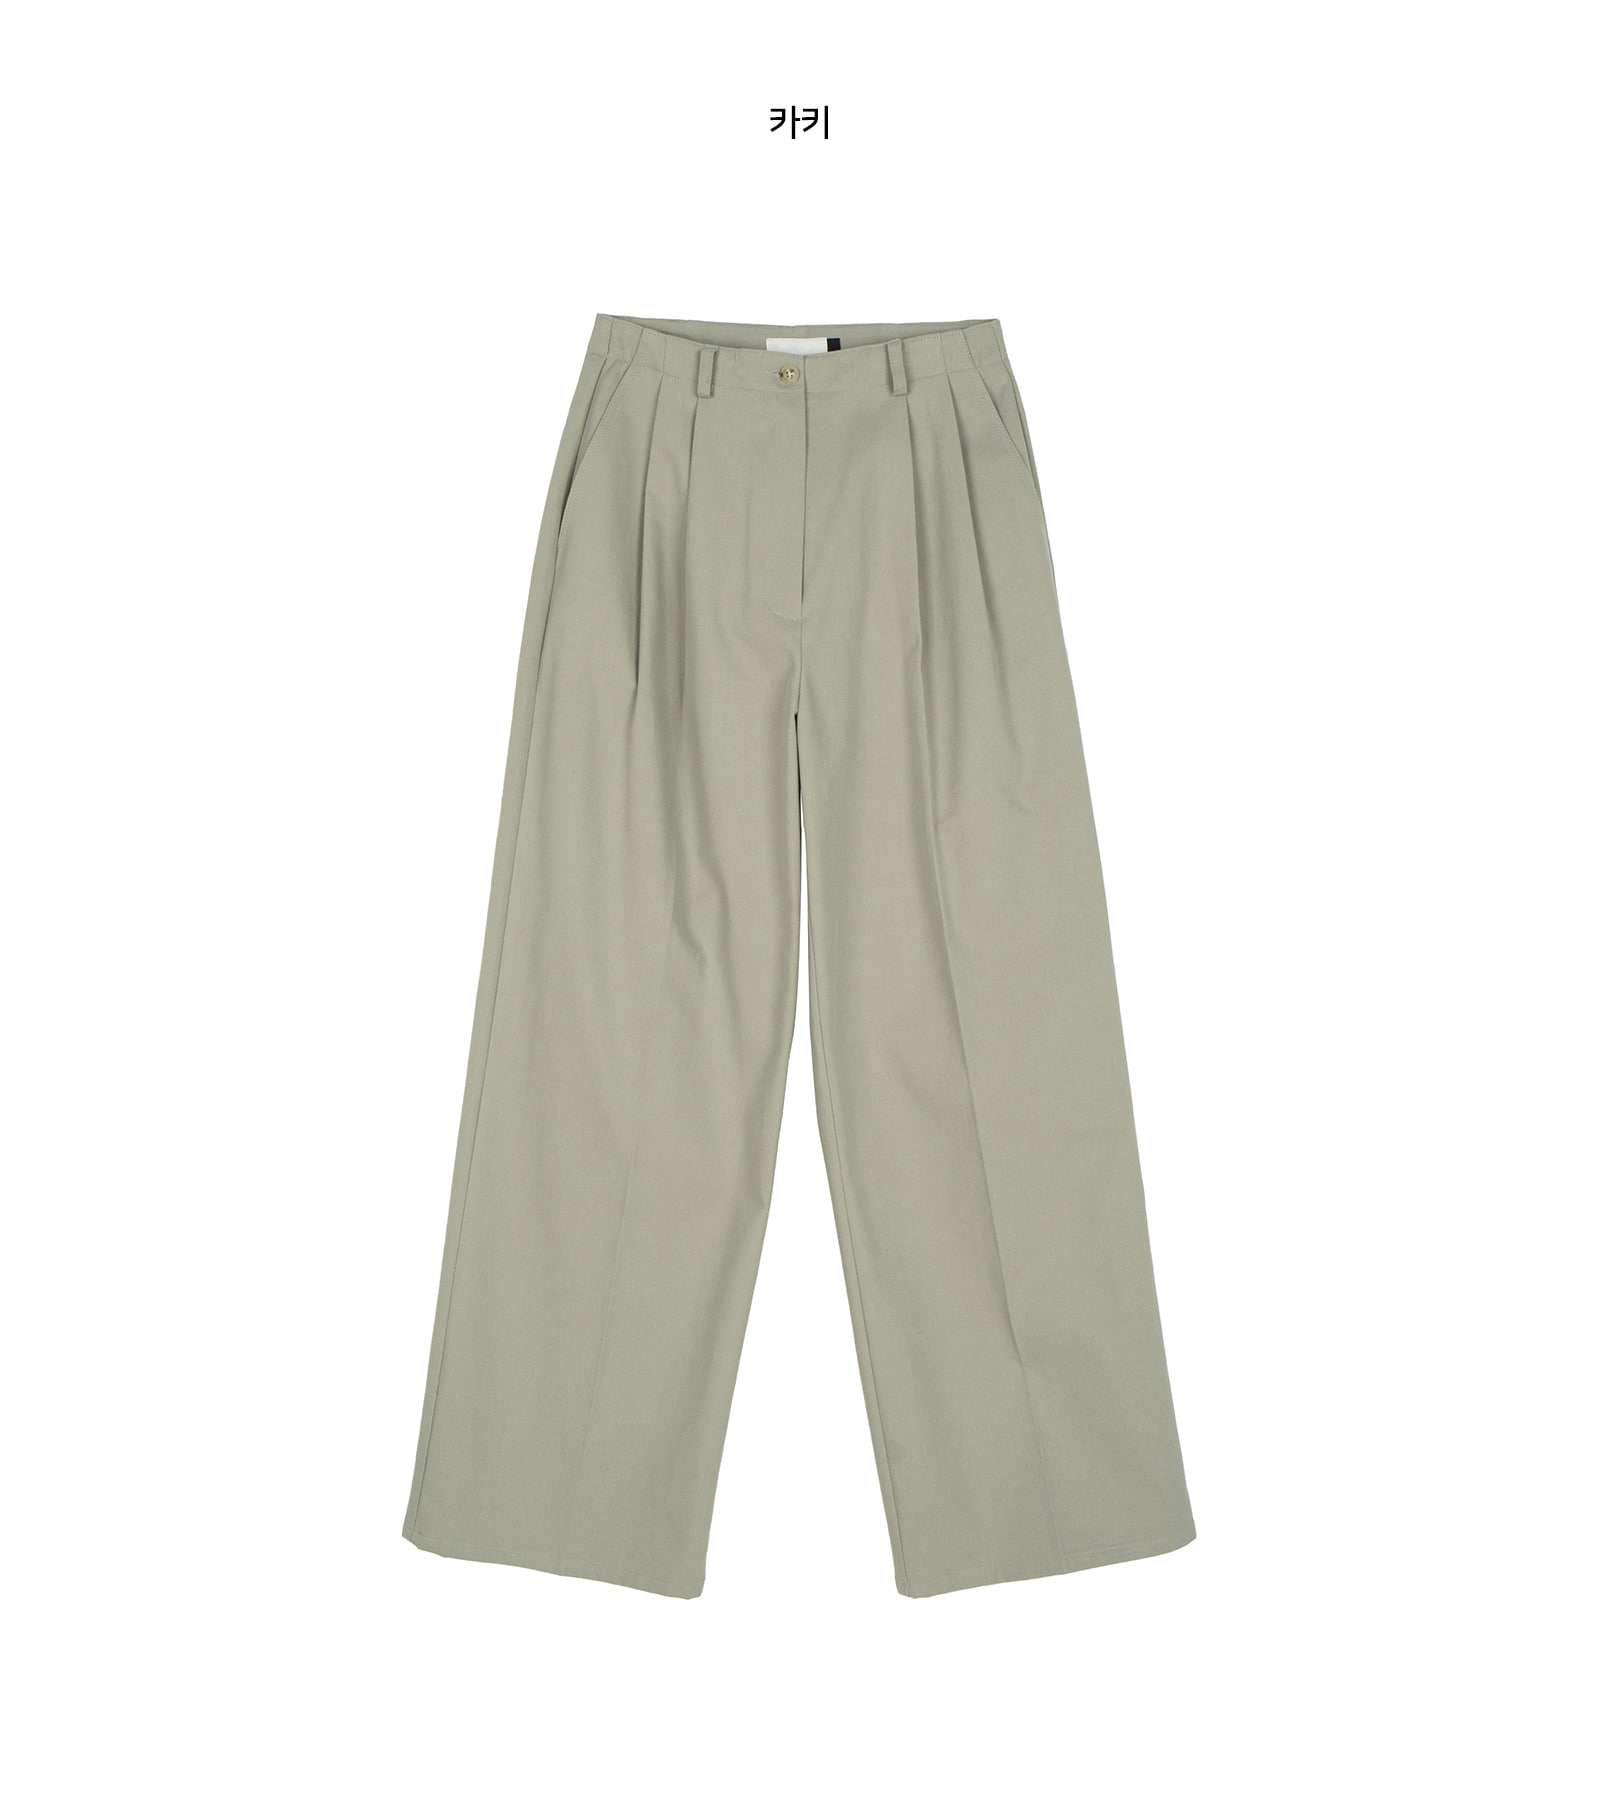 Moss Simple Pintuck Cotton Slacks